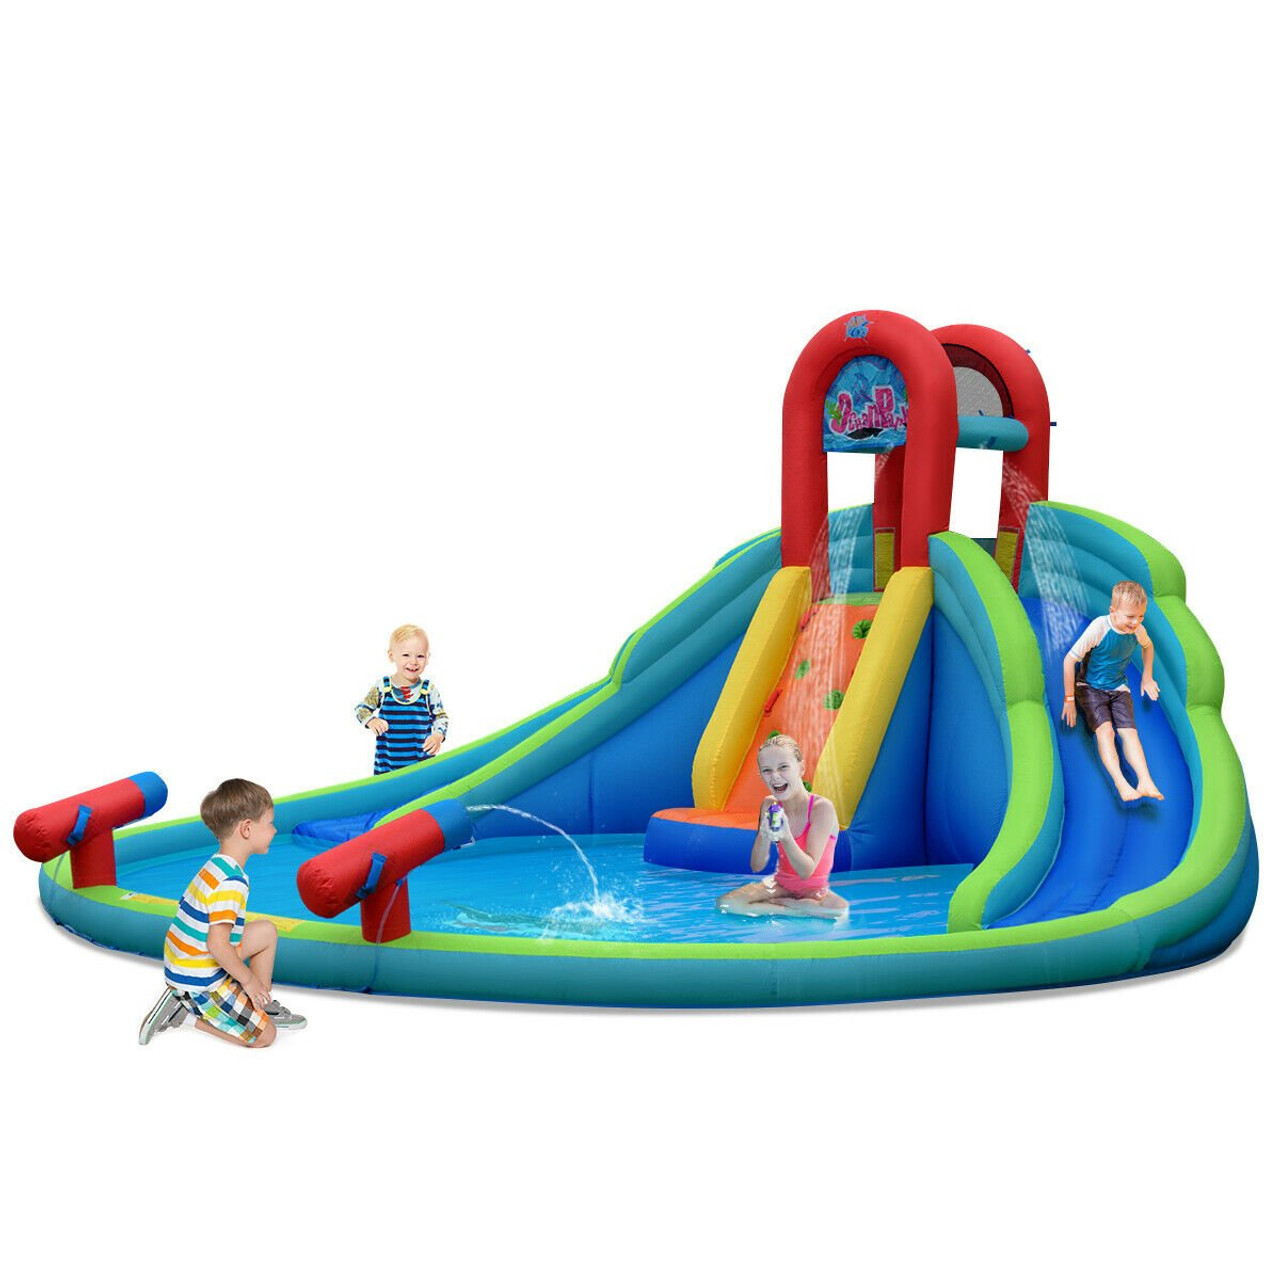 Kids Inflatable Water Slide Bounce House With Carry Bag Op70111 By Cw